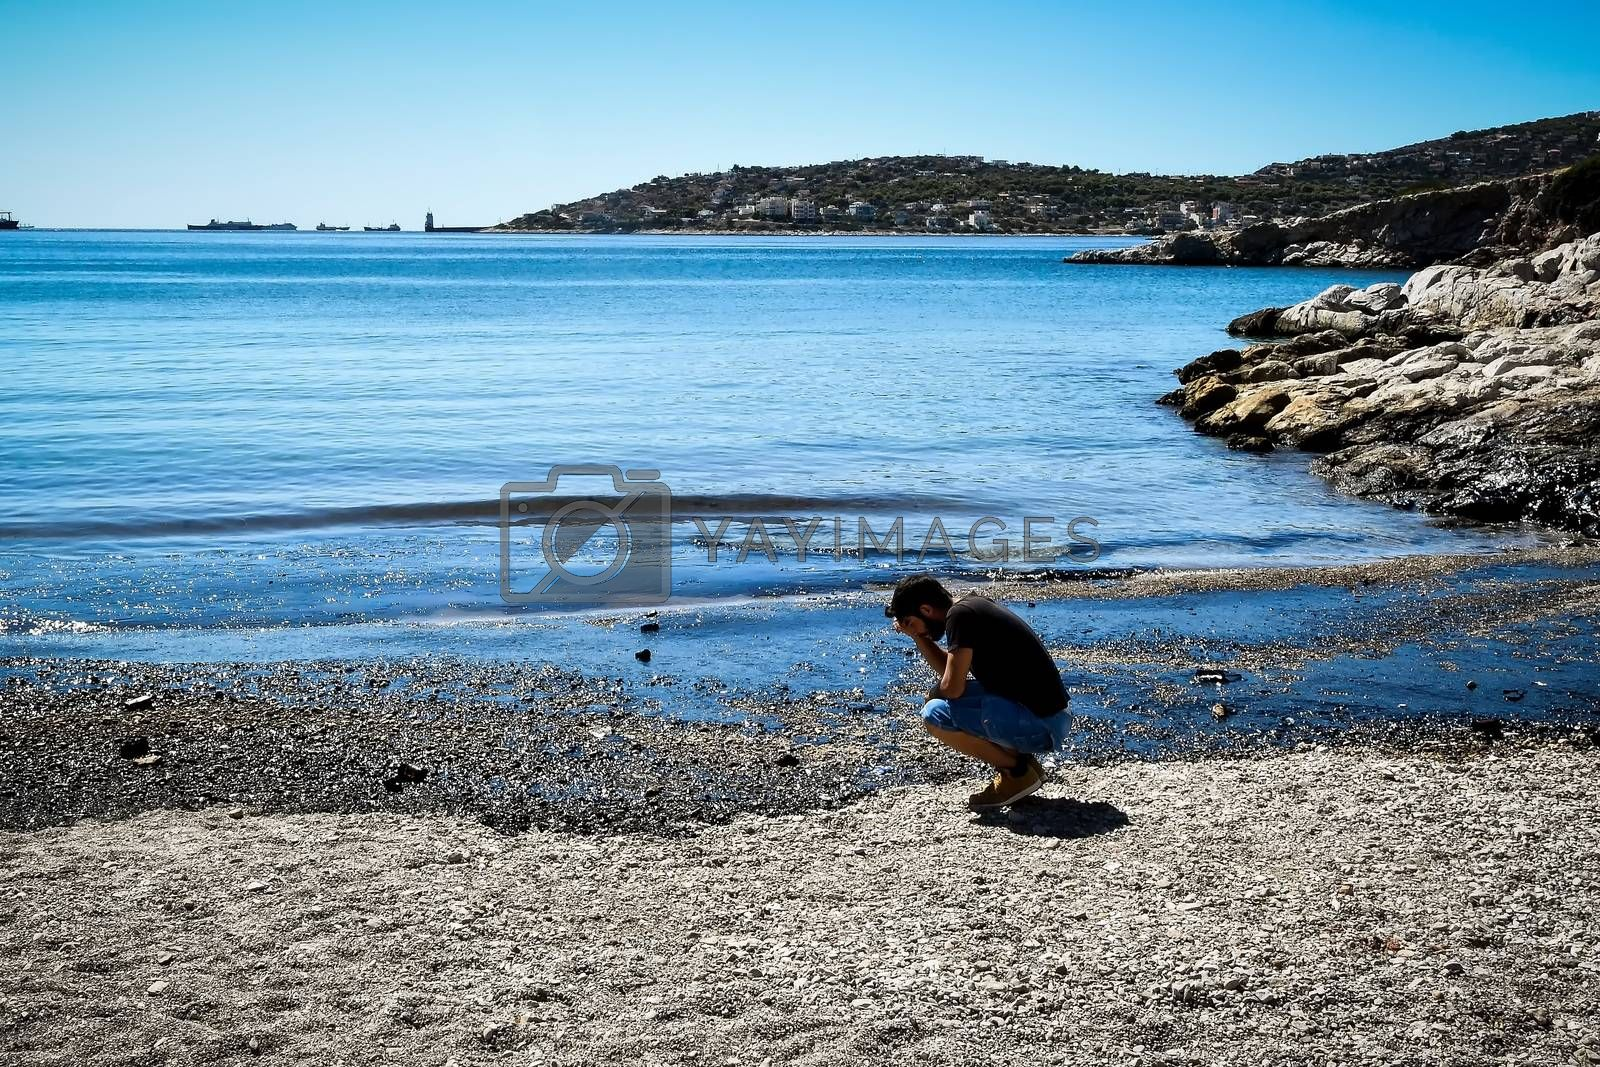 Salamina, Athens, Greece - Sept 13, 2017:Oil, leaked from a sinked ship, come ashore in Salamina Island near Athens, after an old tanker sank close to Salamis island